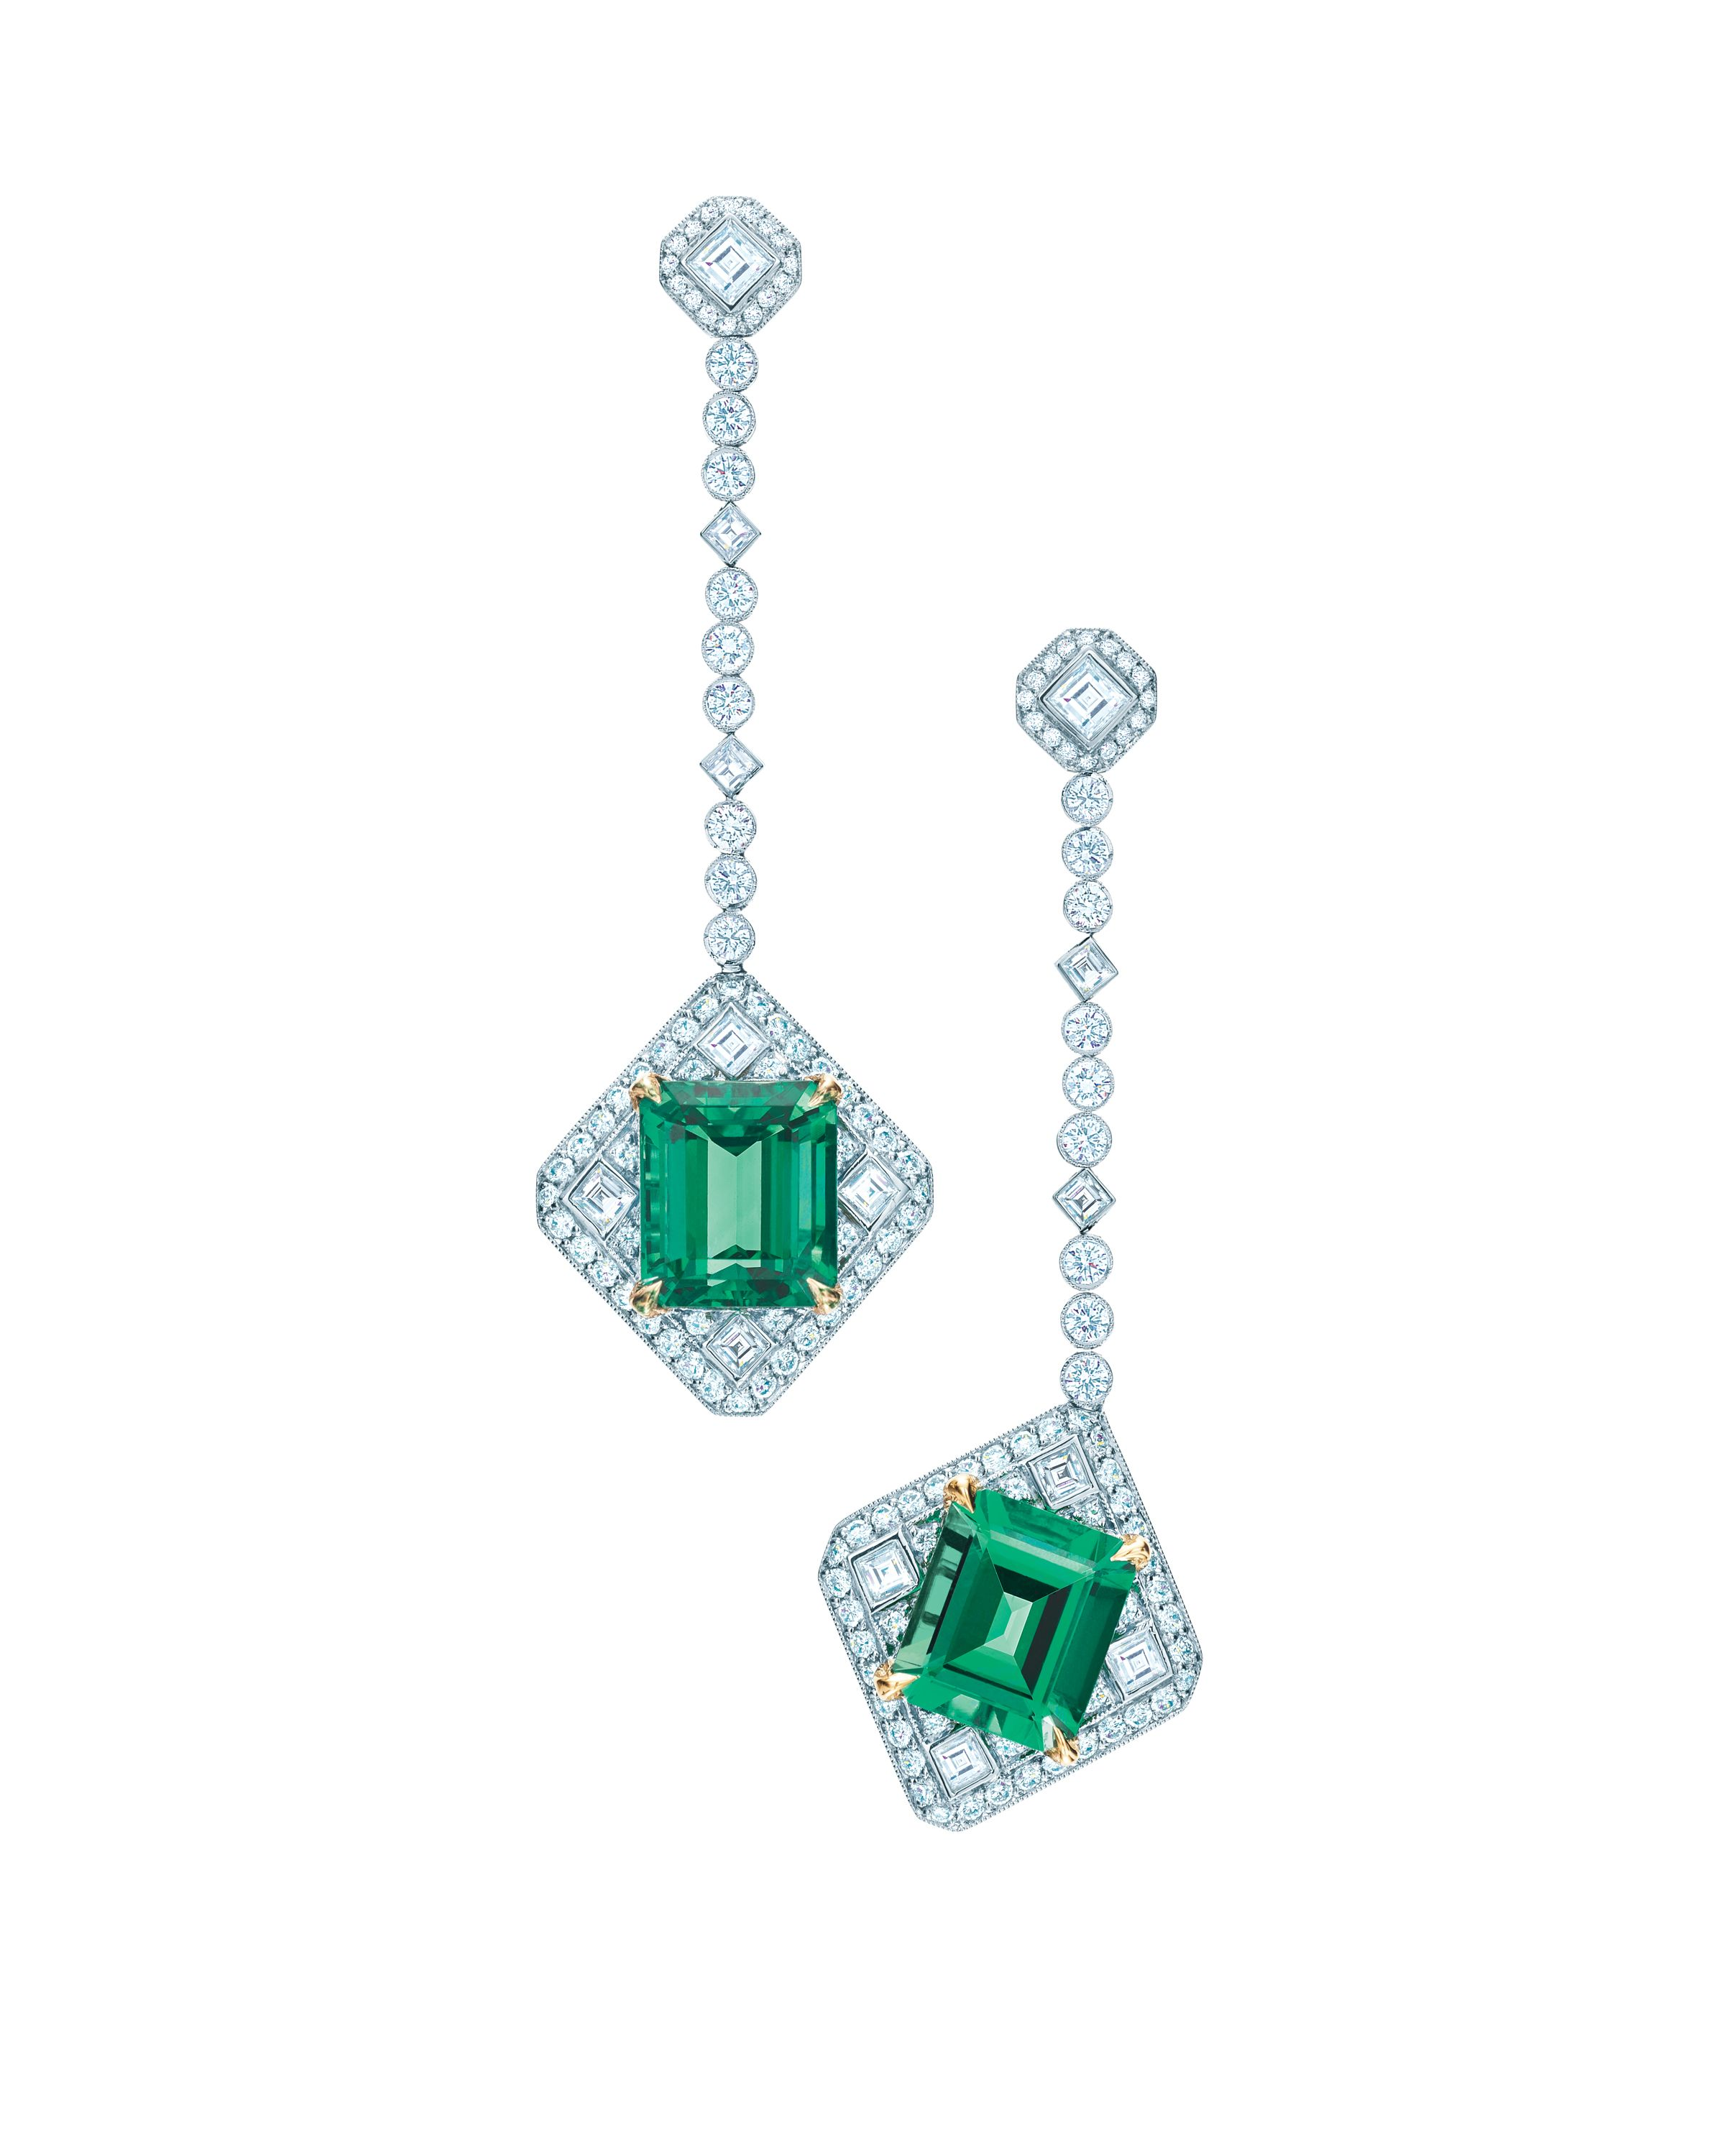 Emerald Earrings Brilliant Variations On Evening Once Drop With Diamonds And Platinum From Left Pear Shaped Tanzanites